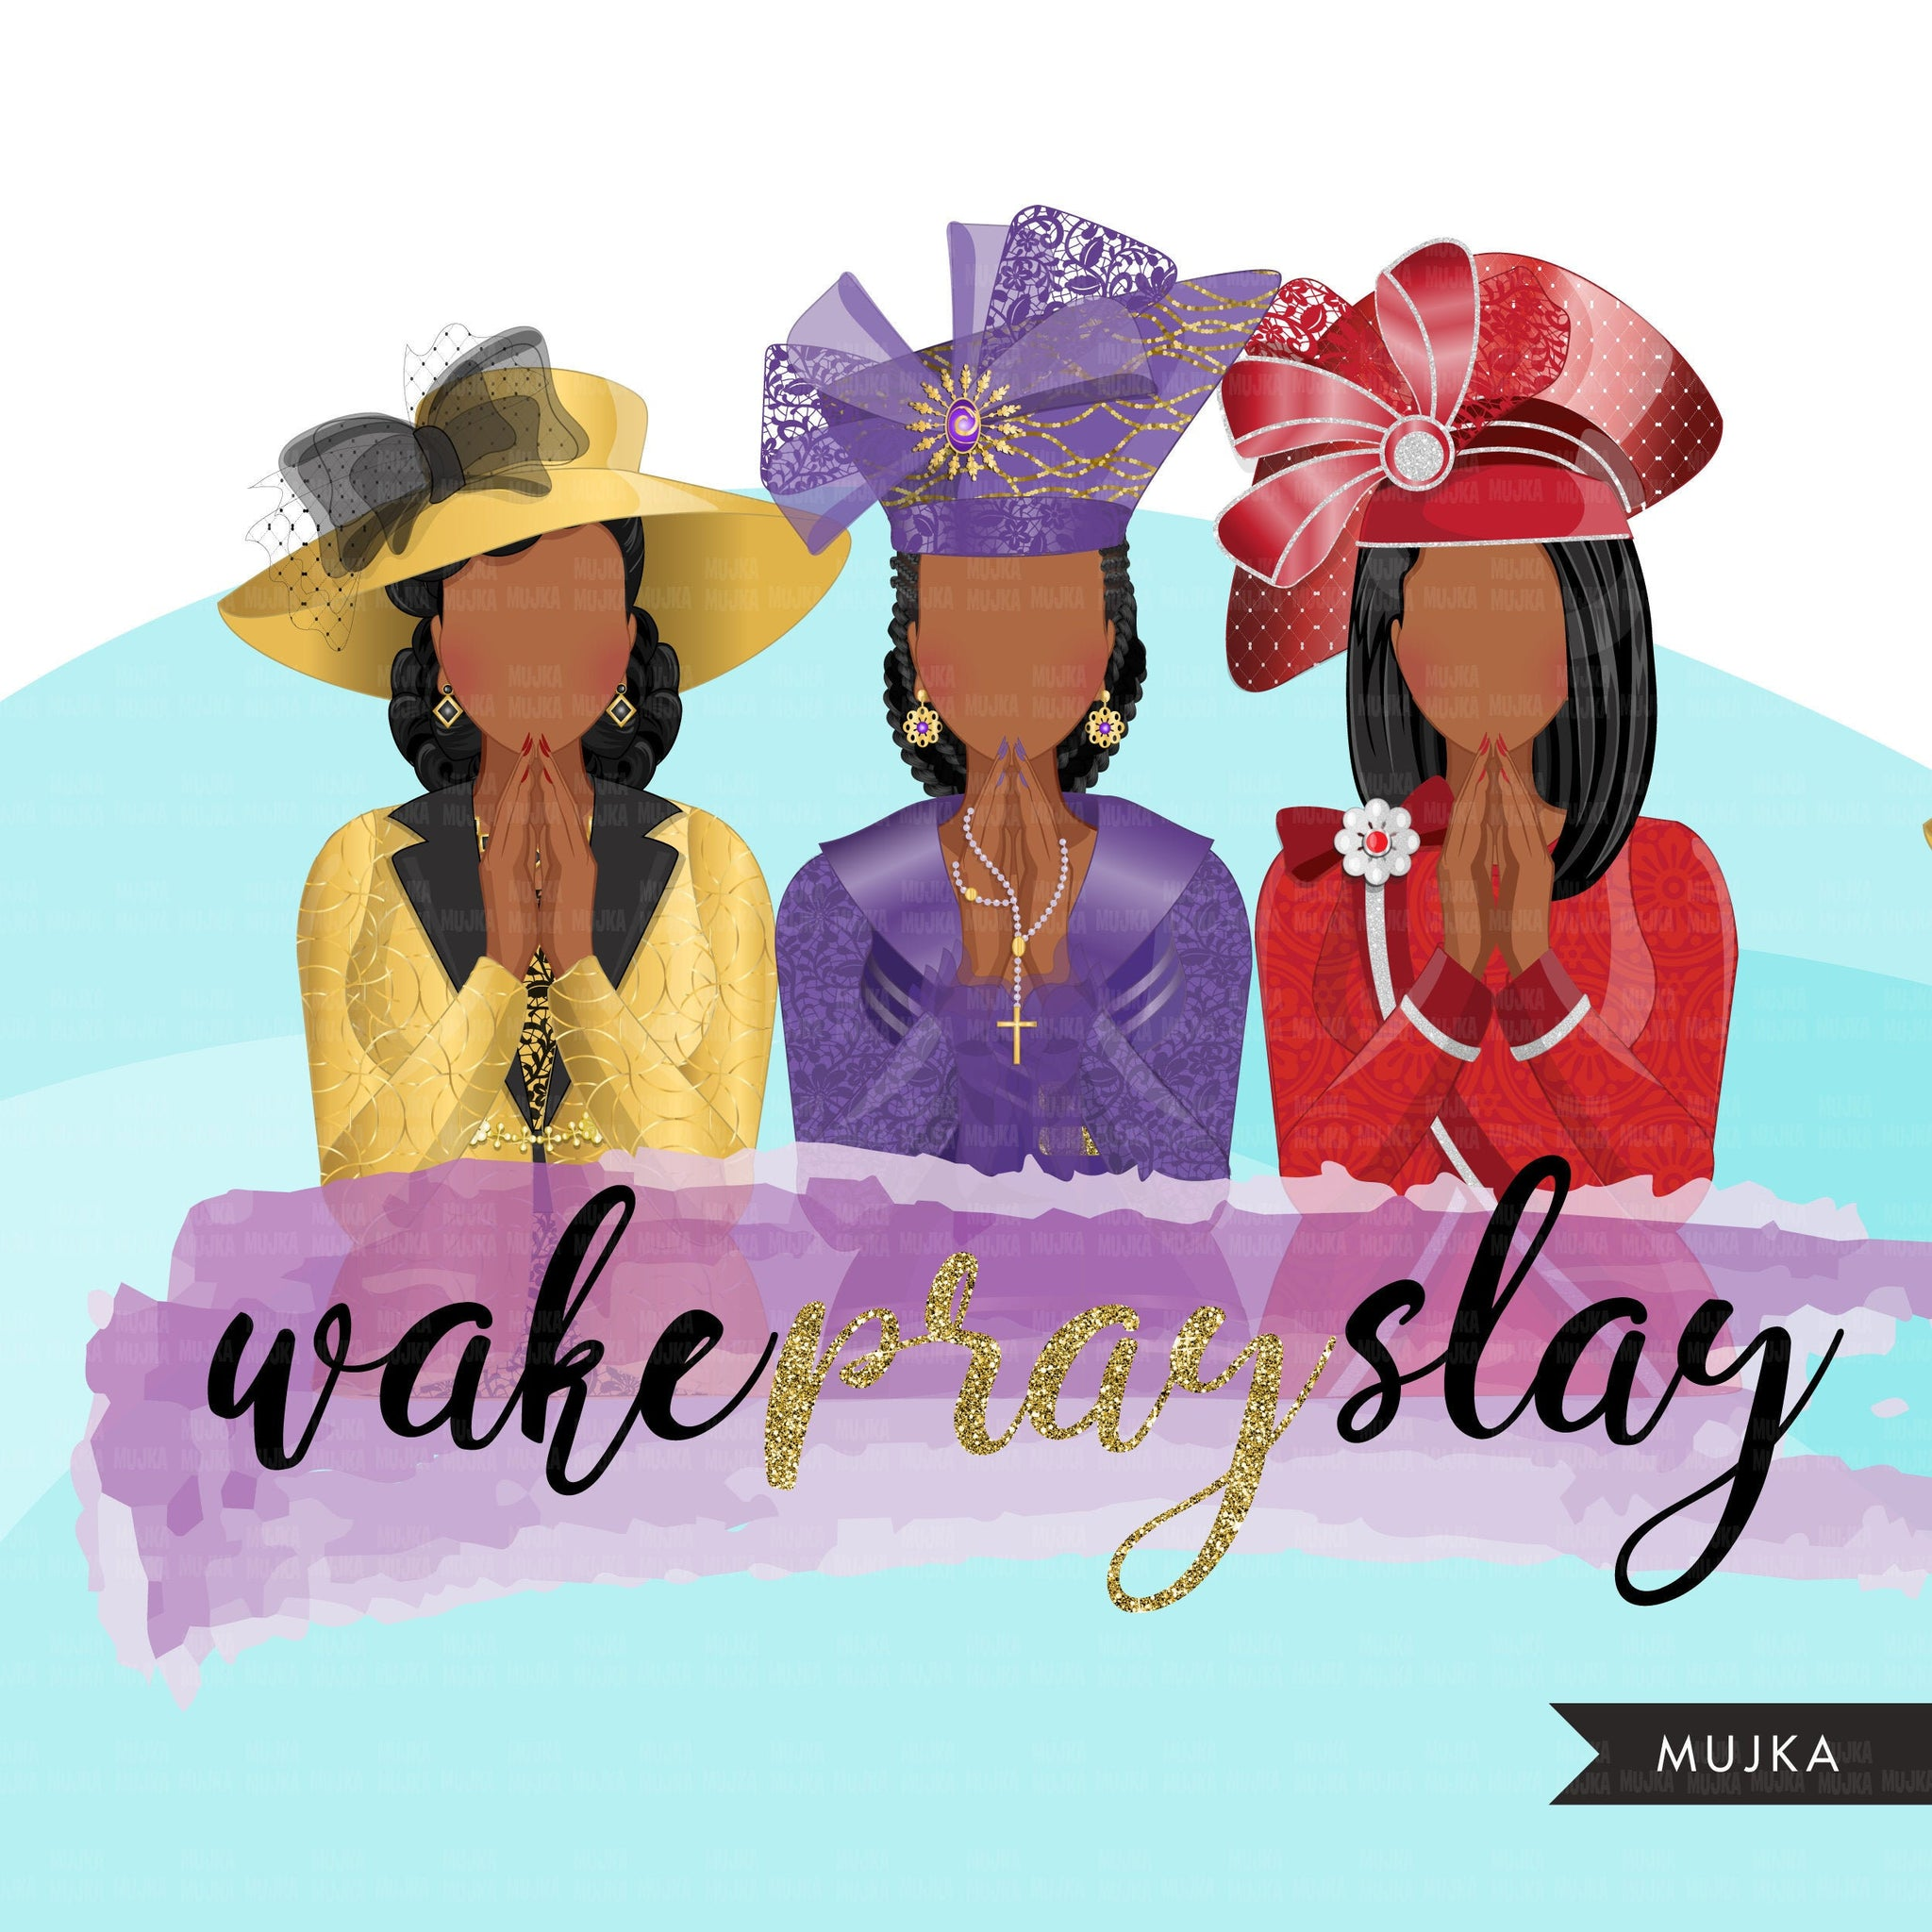 Church ladies clipart, 3 praying sisters sublimation designs, black woman, faith shirt, WAKE PRAY SLAY graphics, Bible religious png